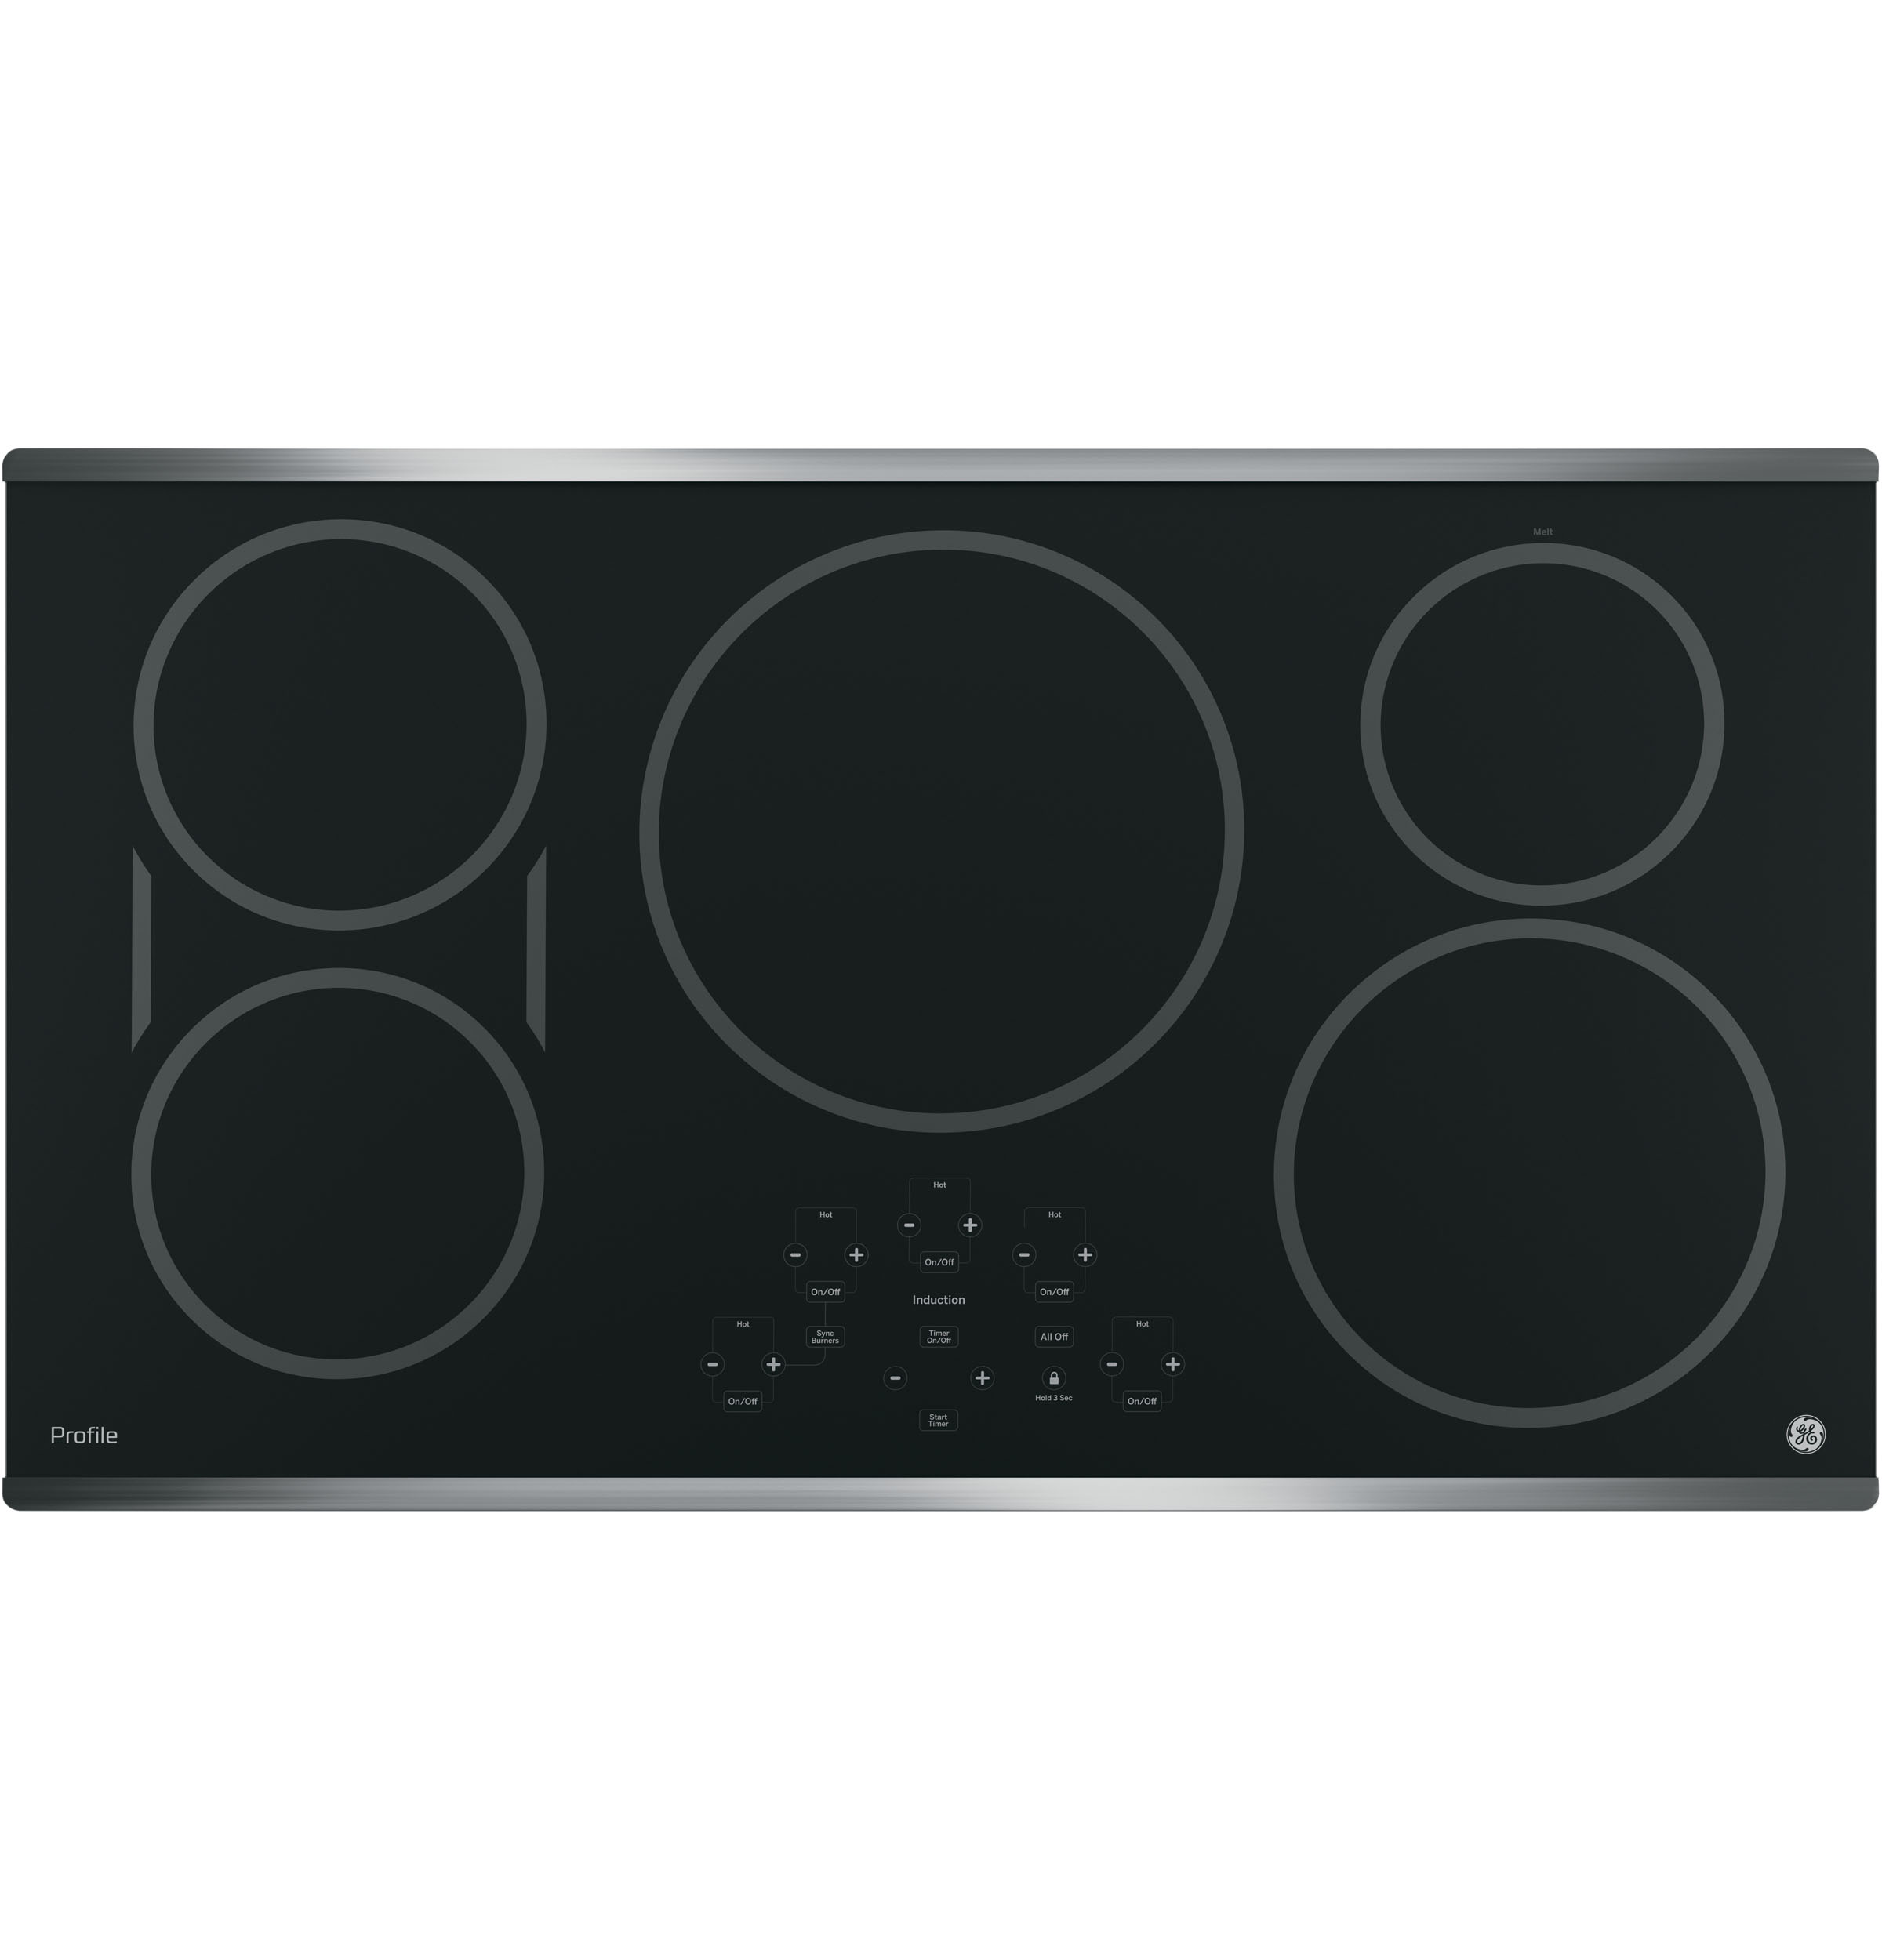 "GE Profile GE Profile™ Series 36"" Built-In Touch Control Induction Cooktop"